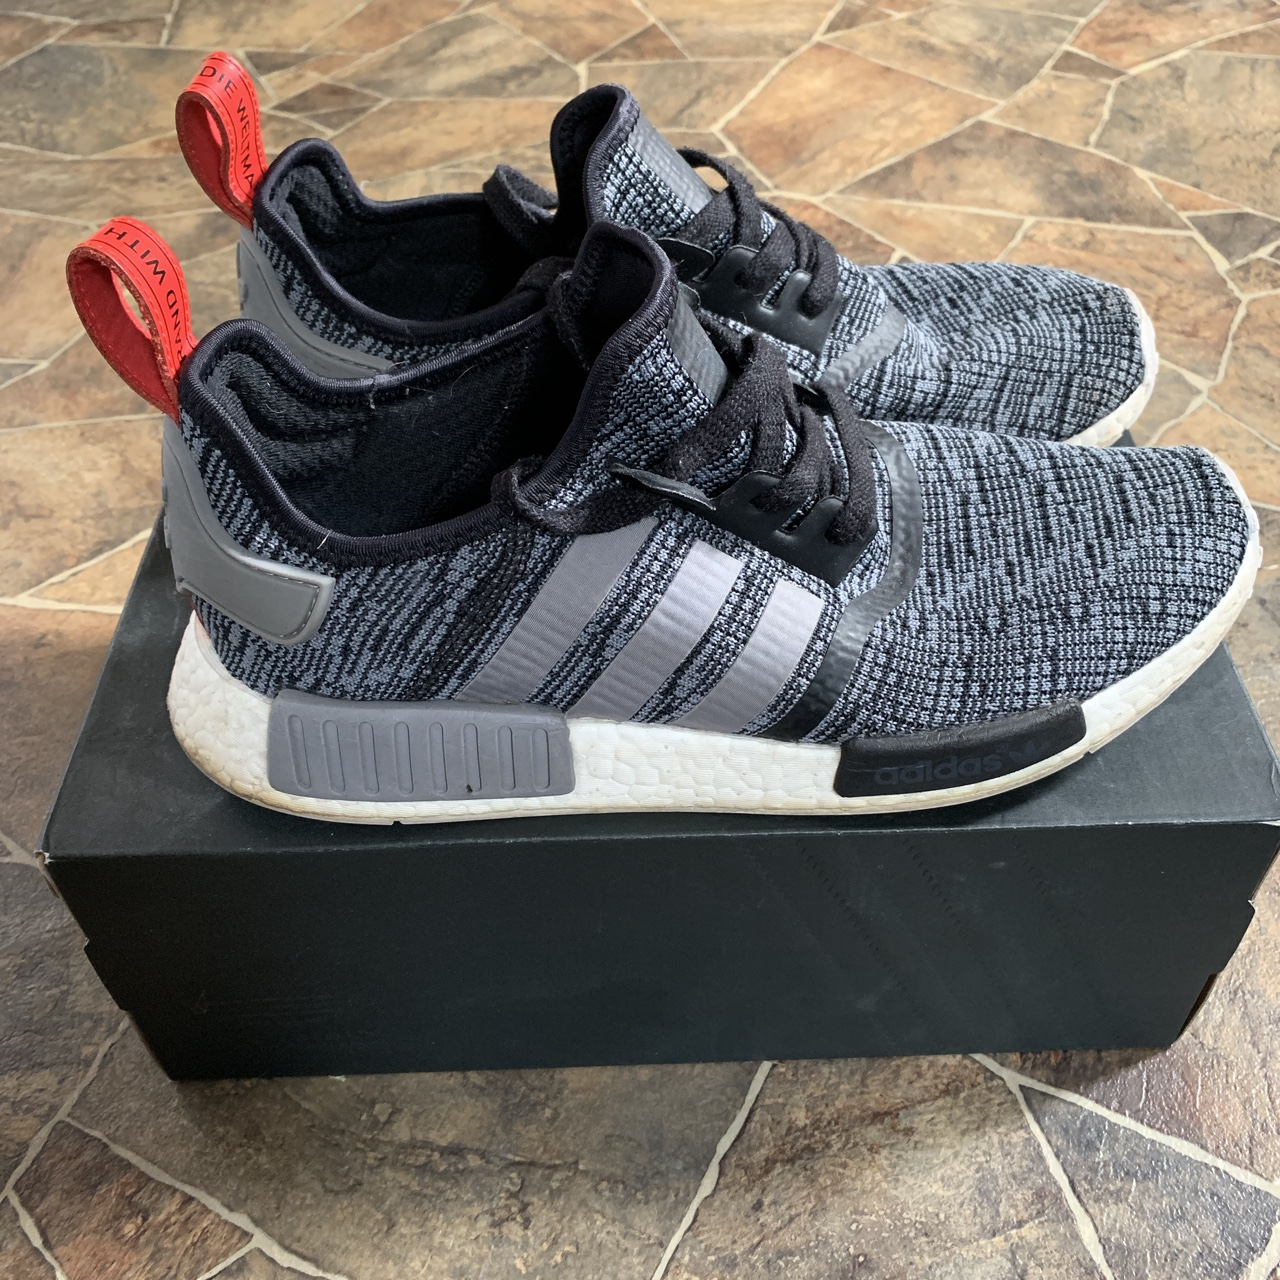 ADIDAS NMD R1 BB2884 Comes with